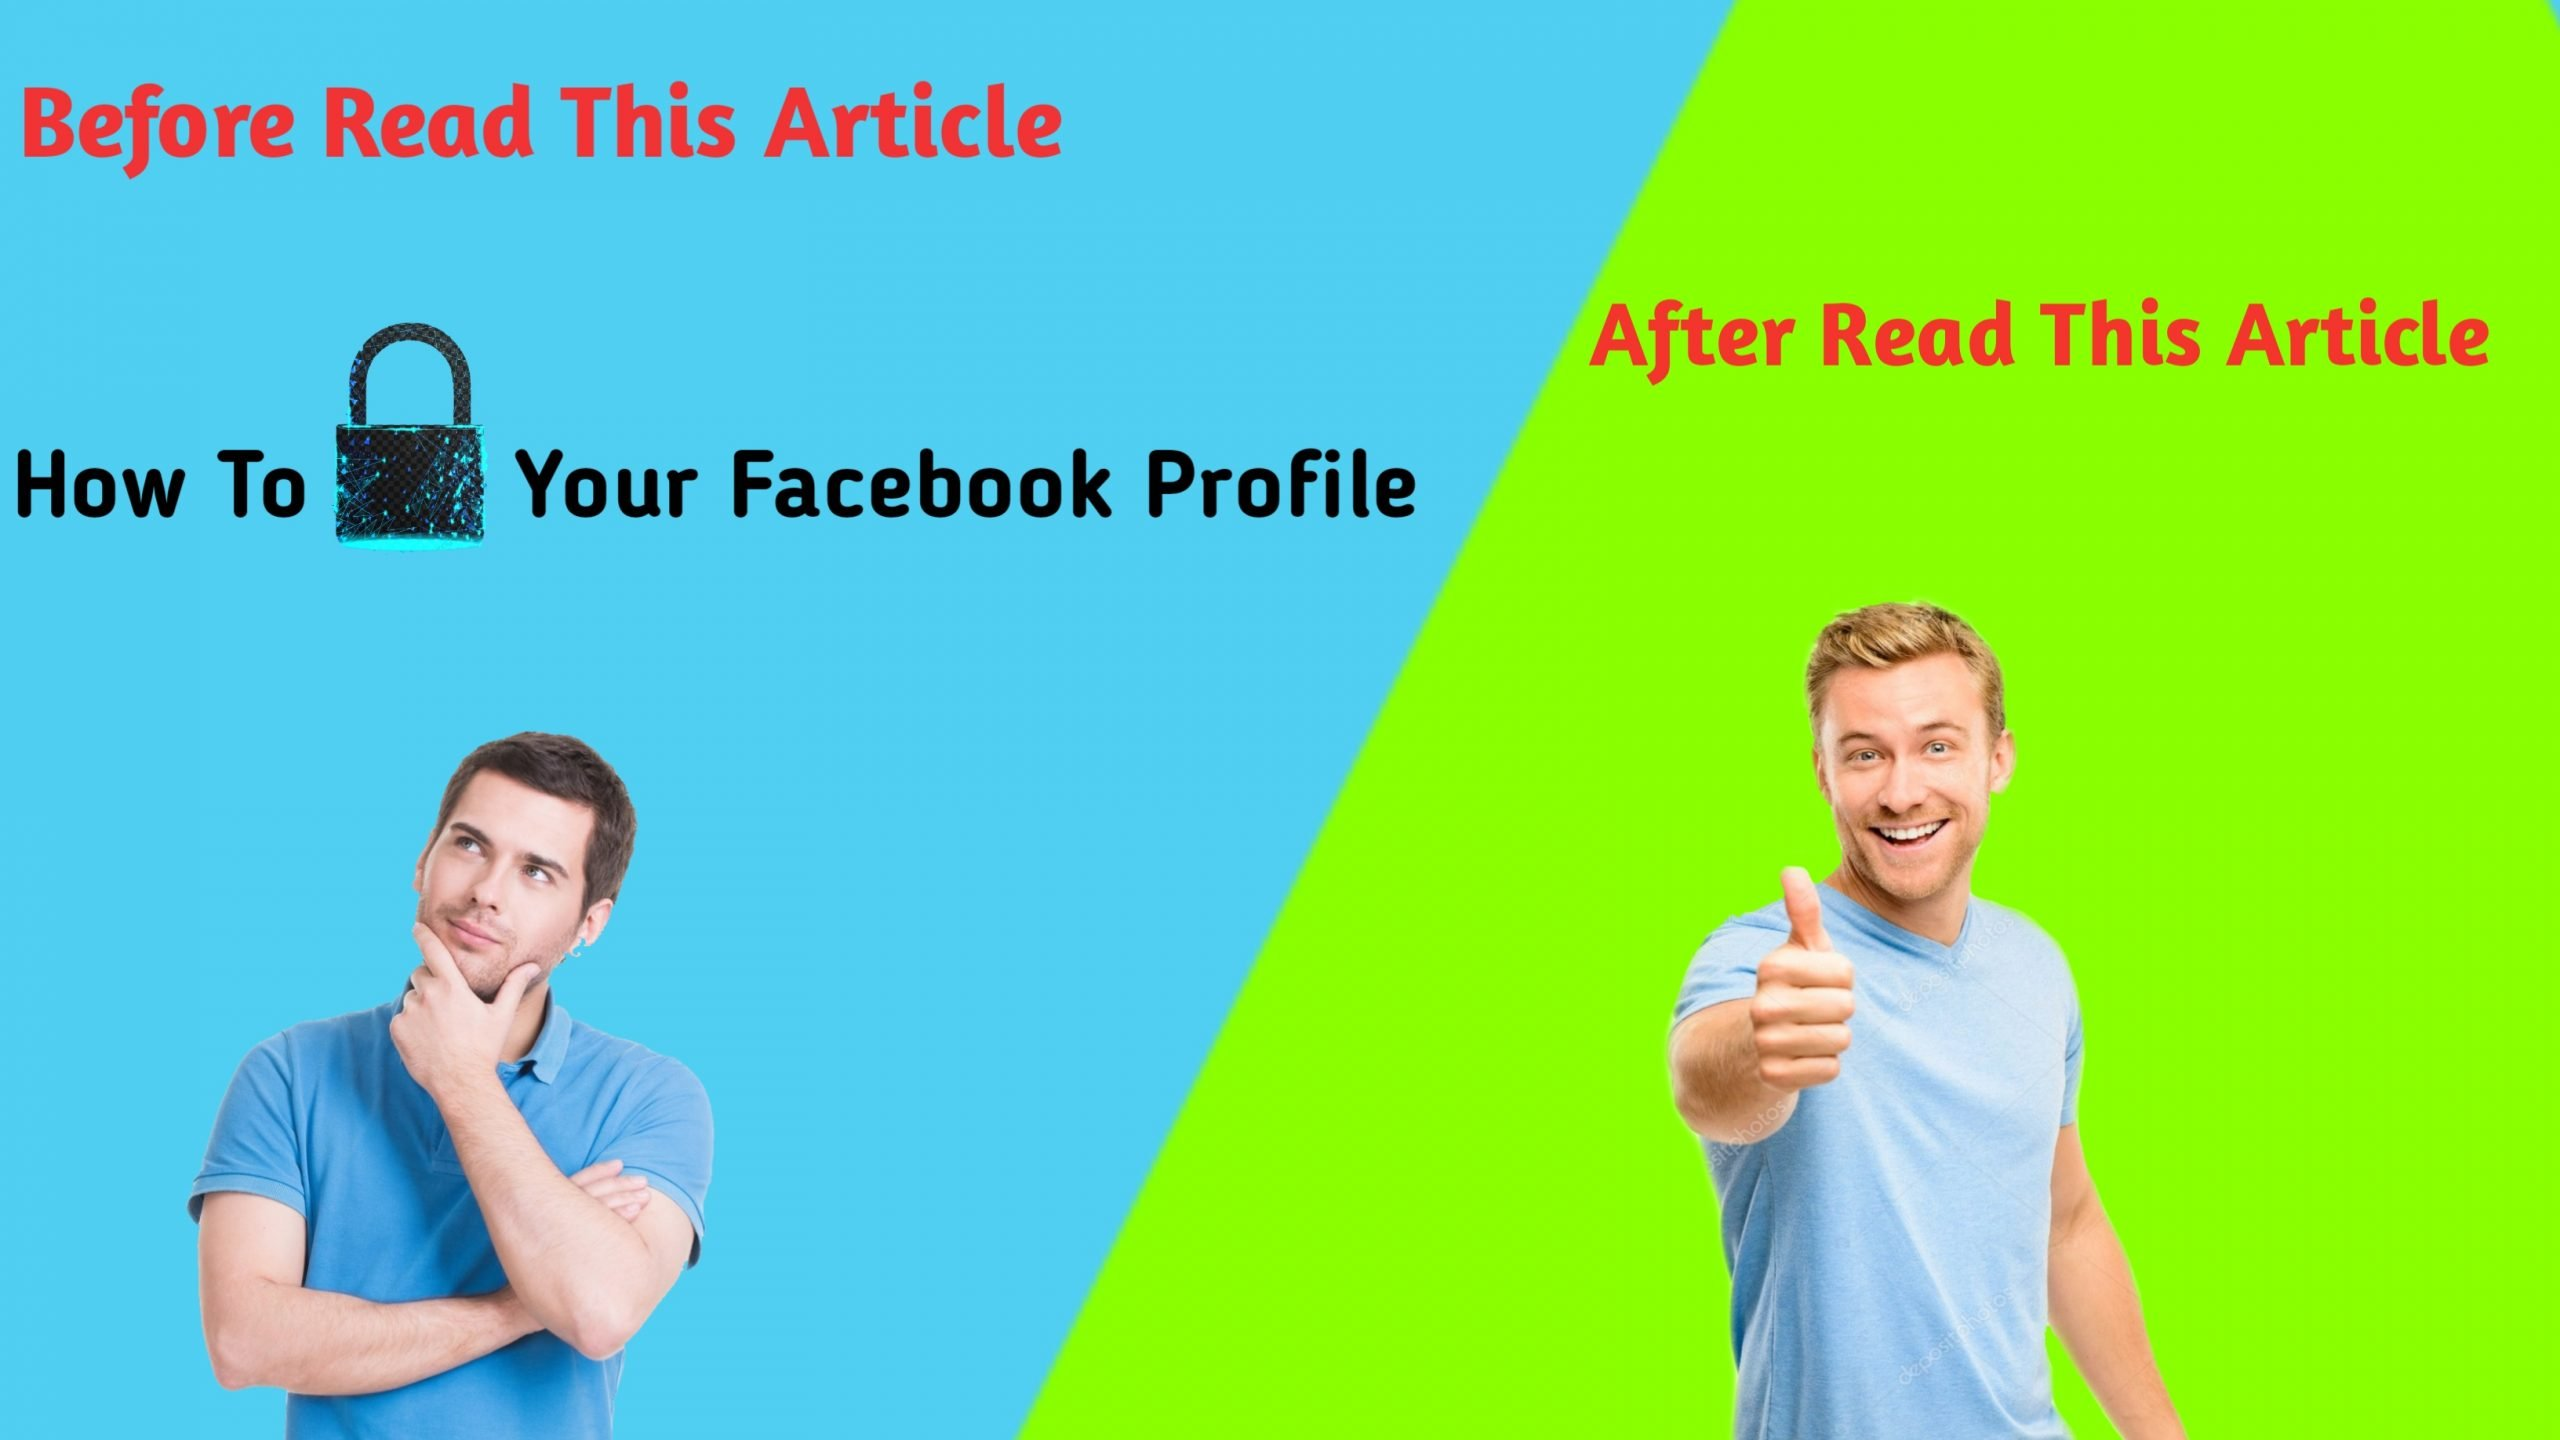 How to Lock Facebook Profile in 8 simple steps (Exclusive guide)